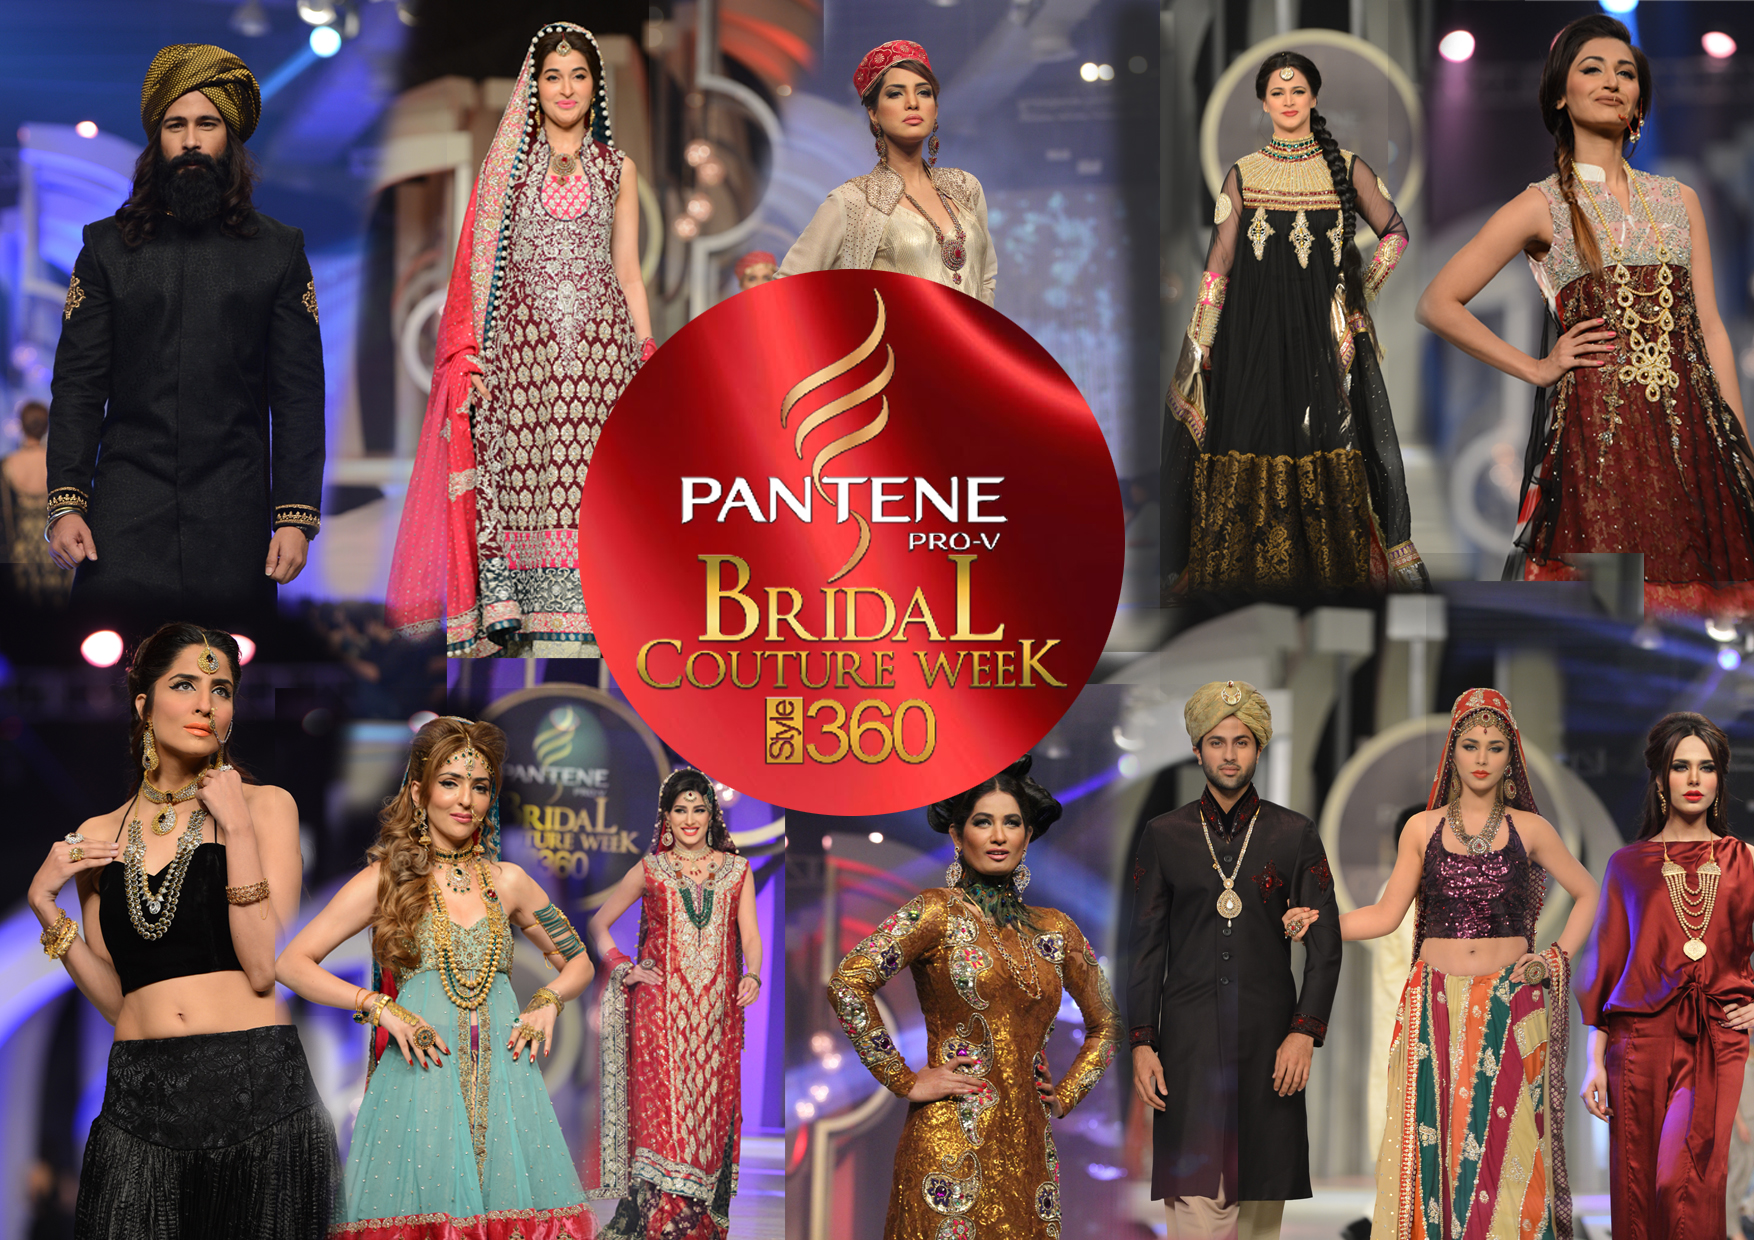 7th Bridal Couture Week 2013